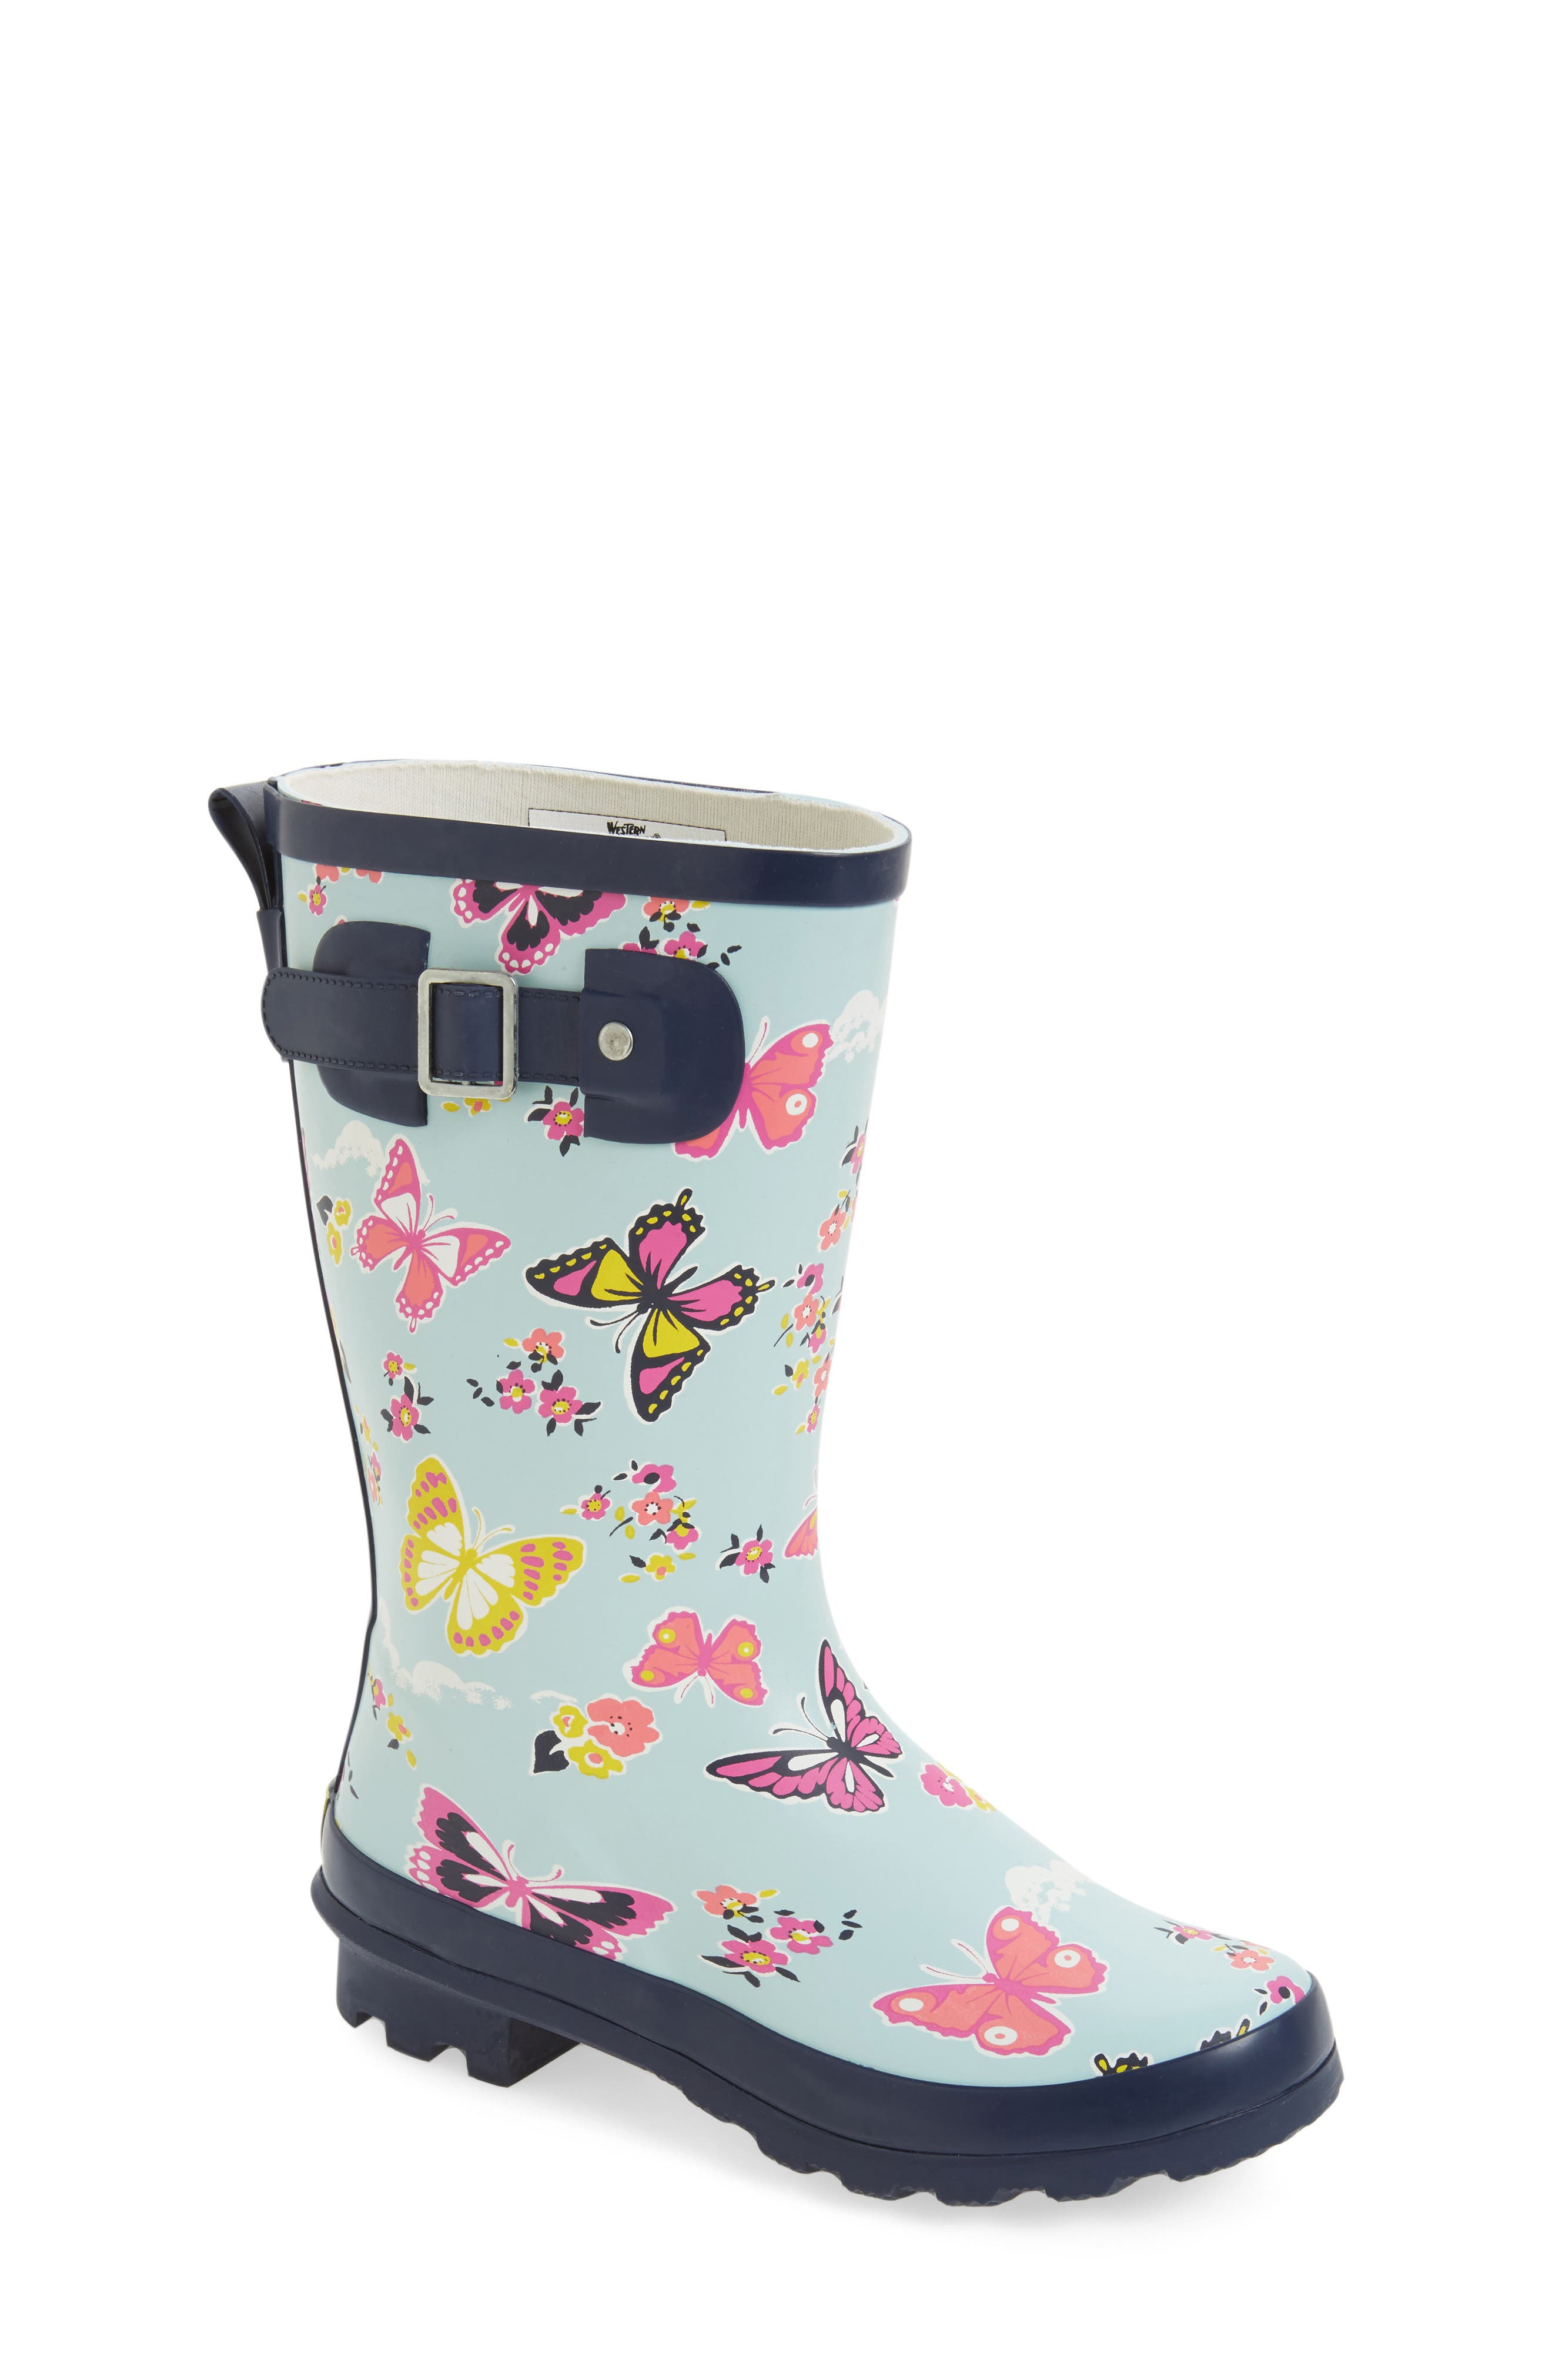 Western Chief Classic Butterfly Floral Rain Boot (Toddler, Little Kid & Big Kid)